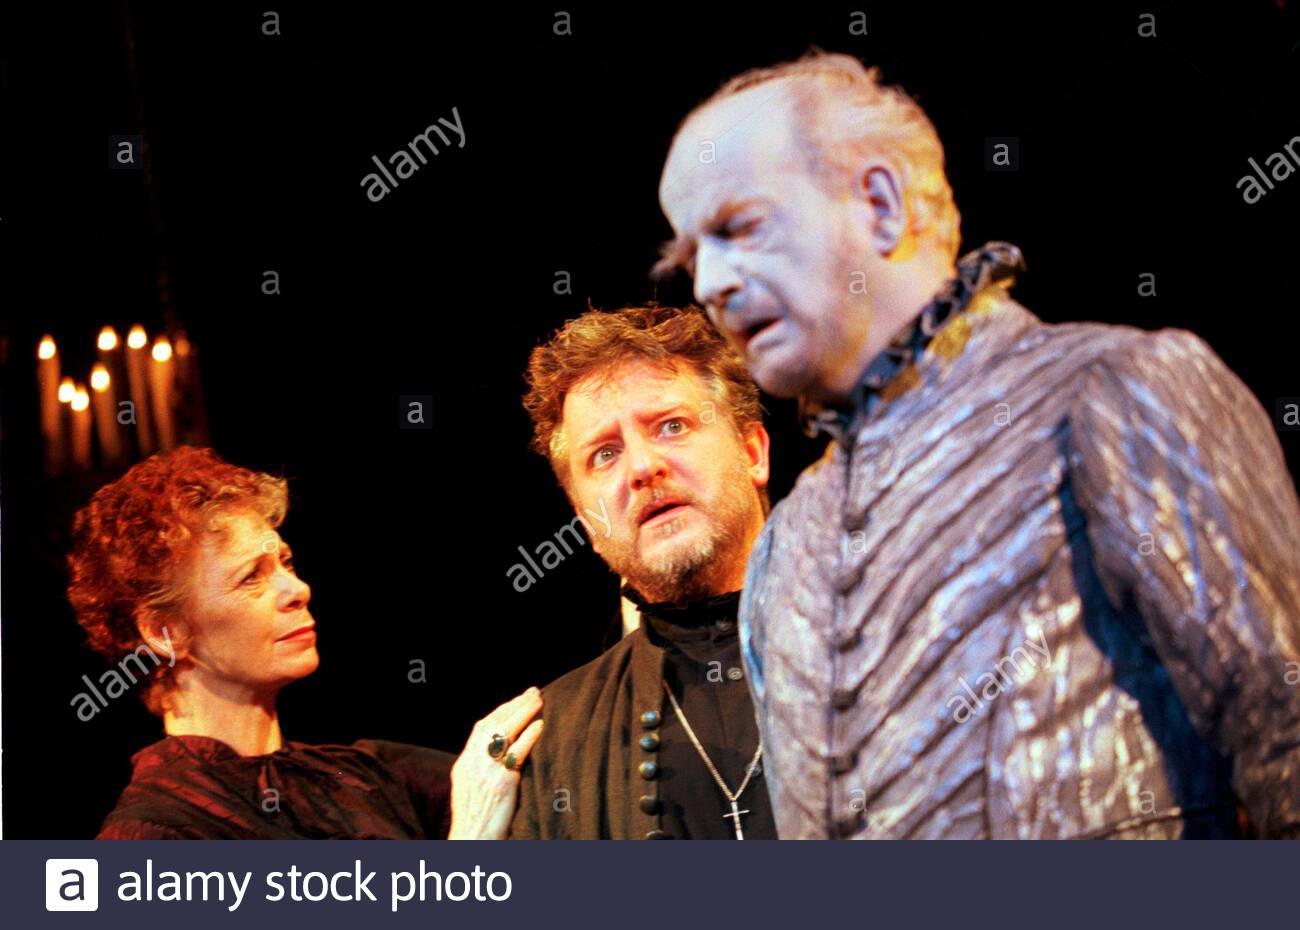 Shakespeare in Production Ser.: Troilus and Cressida by